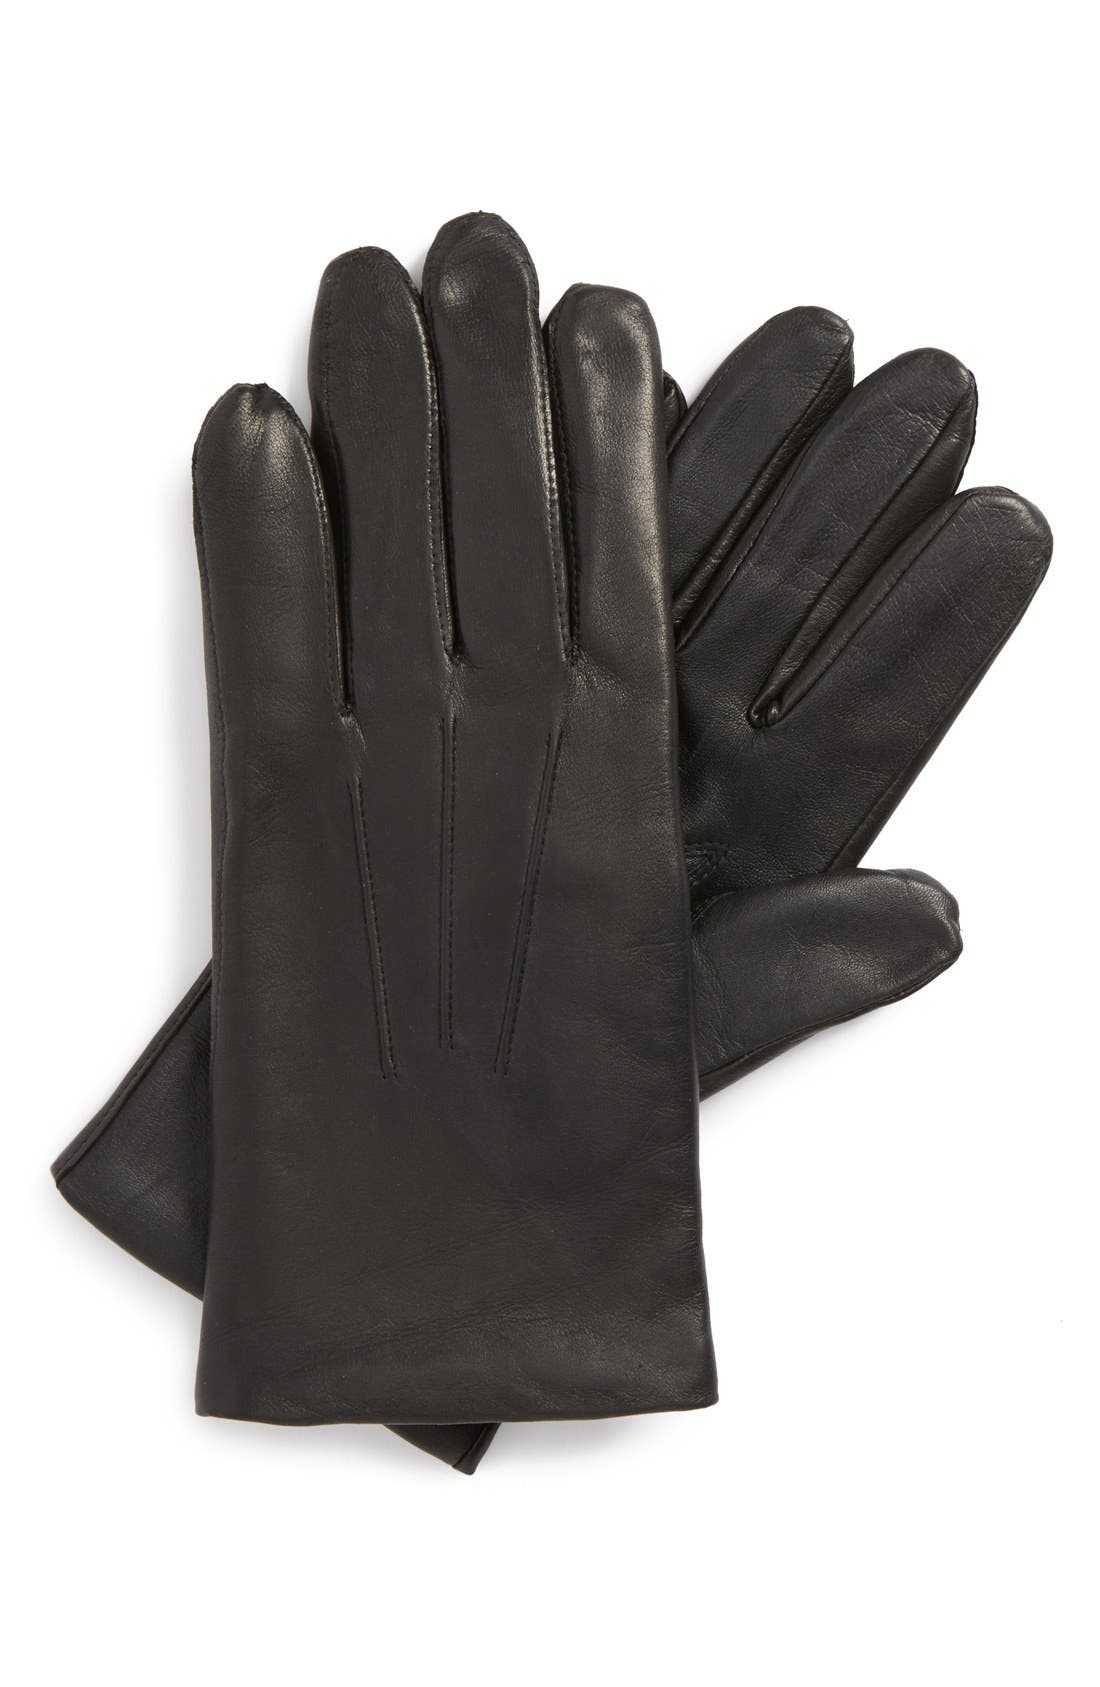 Main Image - John W. Nordstrom® Leather Tech Gloves